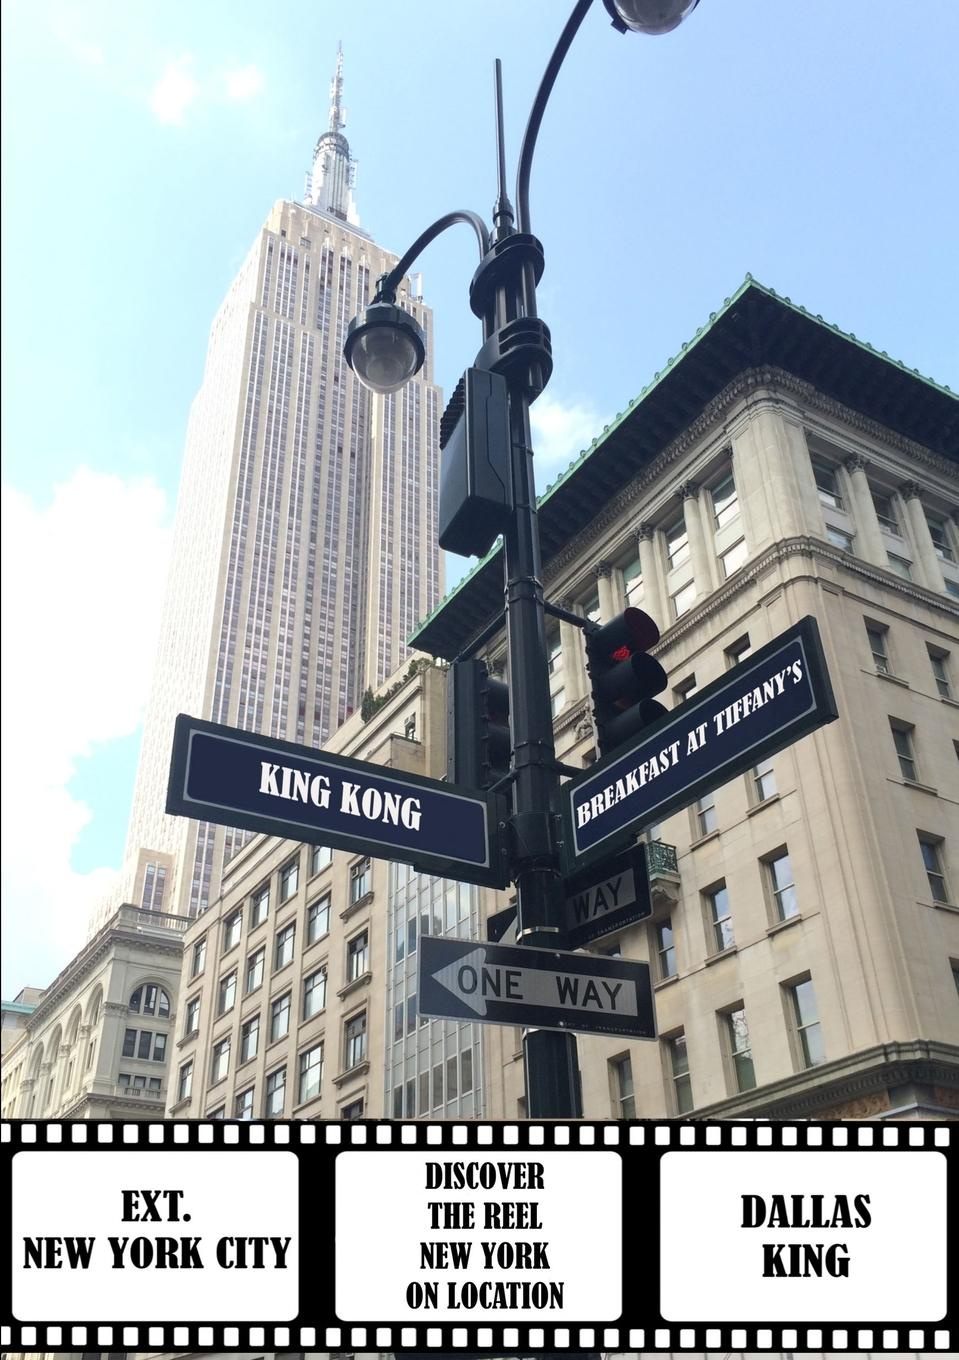 Dallas King Ext. New York City - Discover The Reel New York On Location